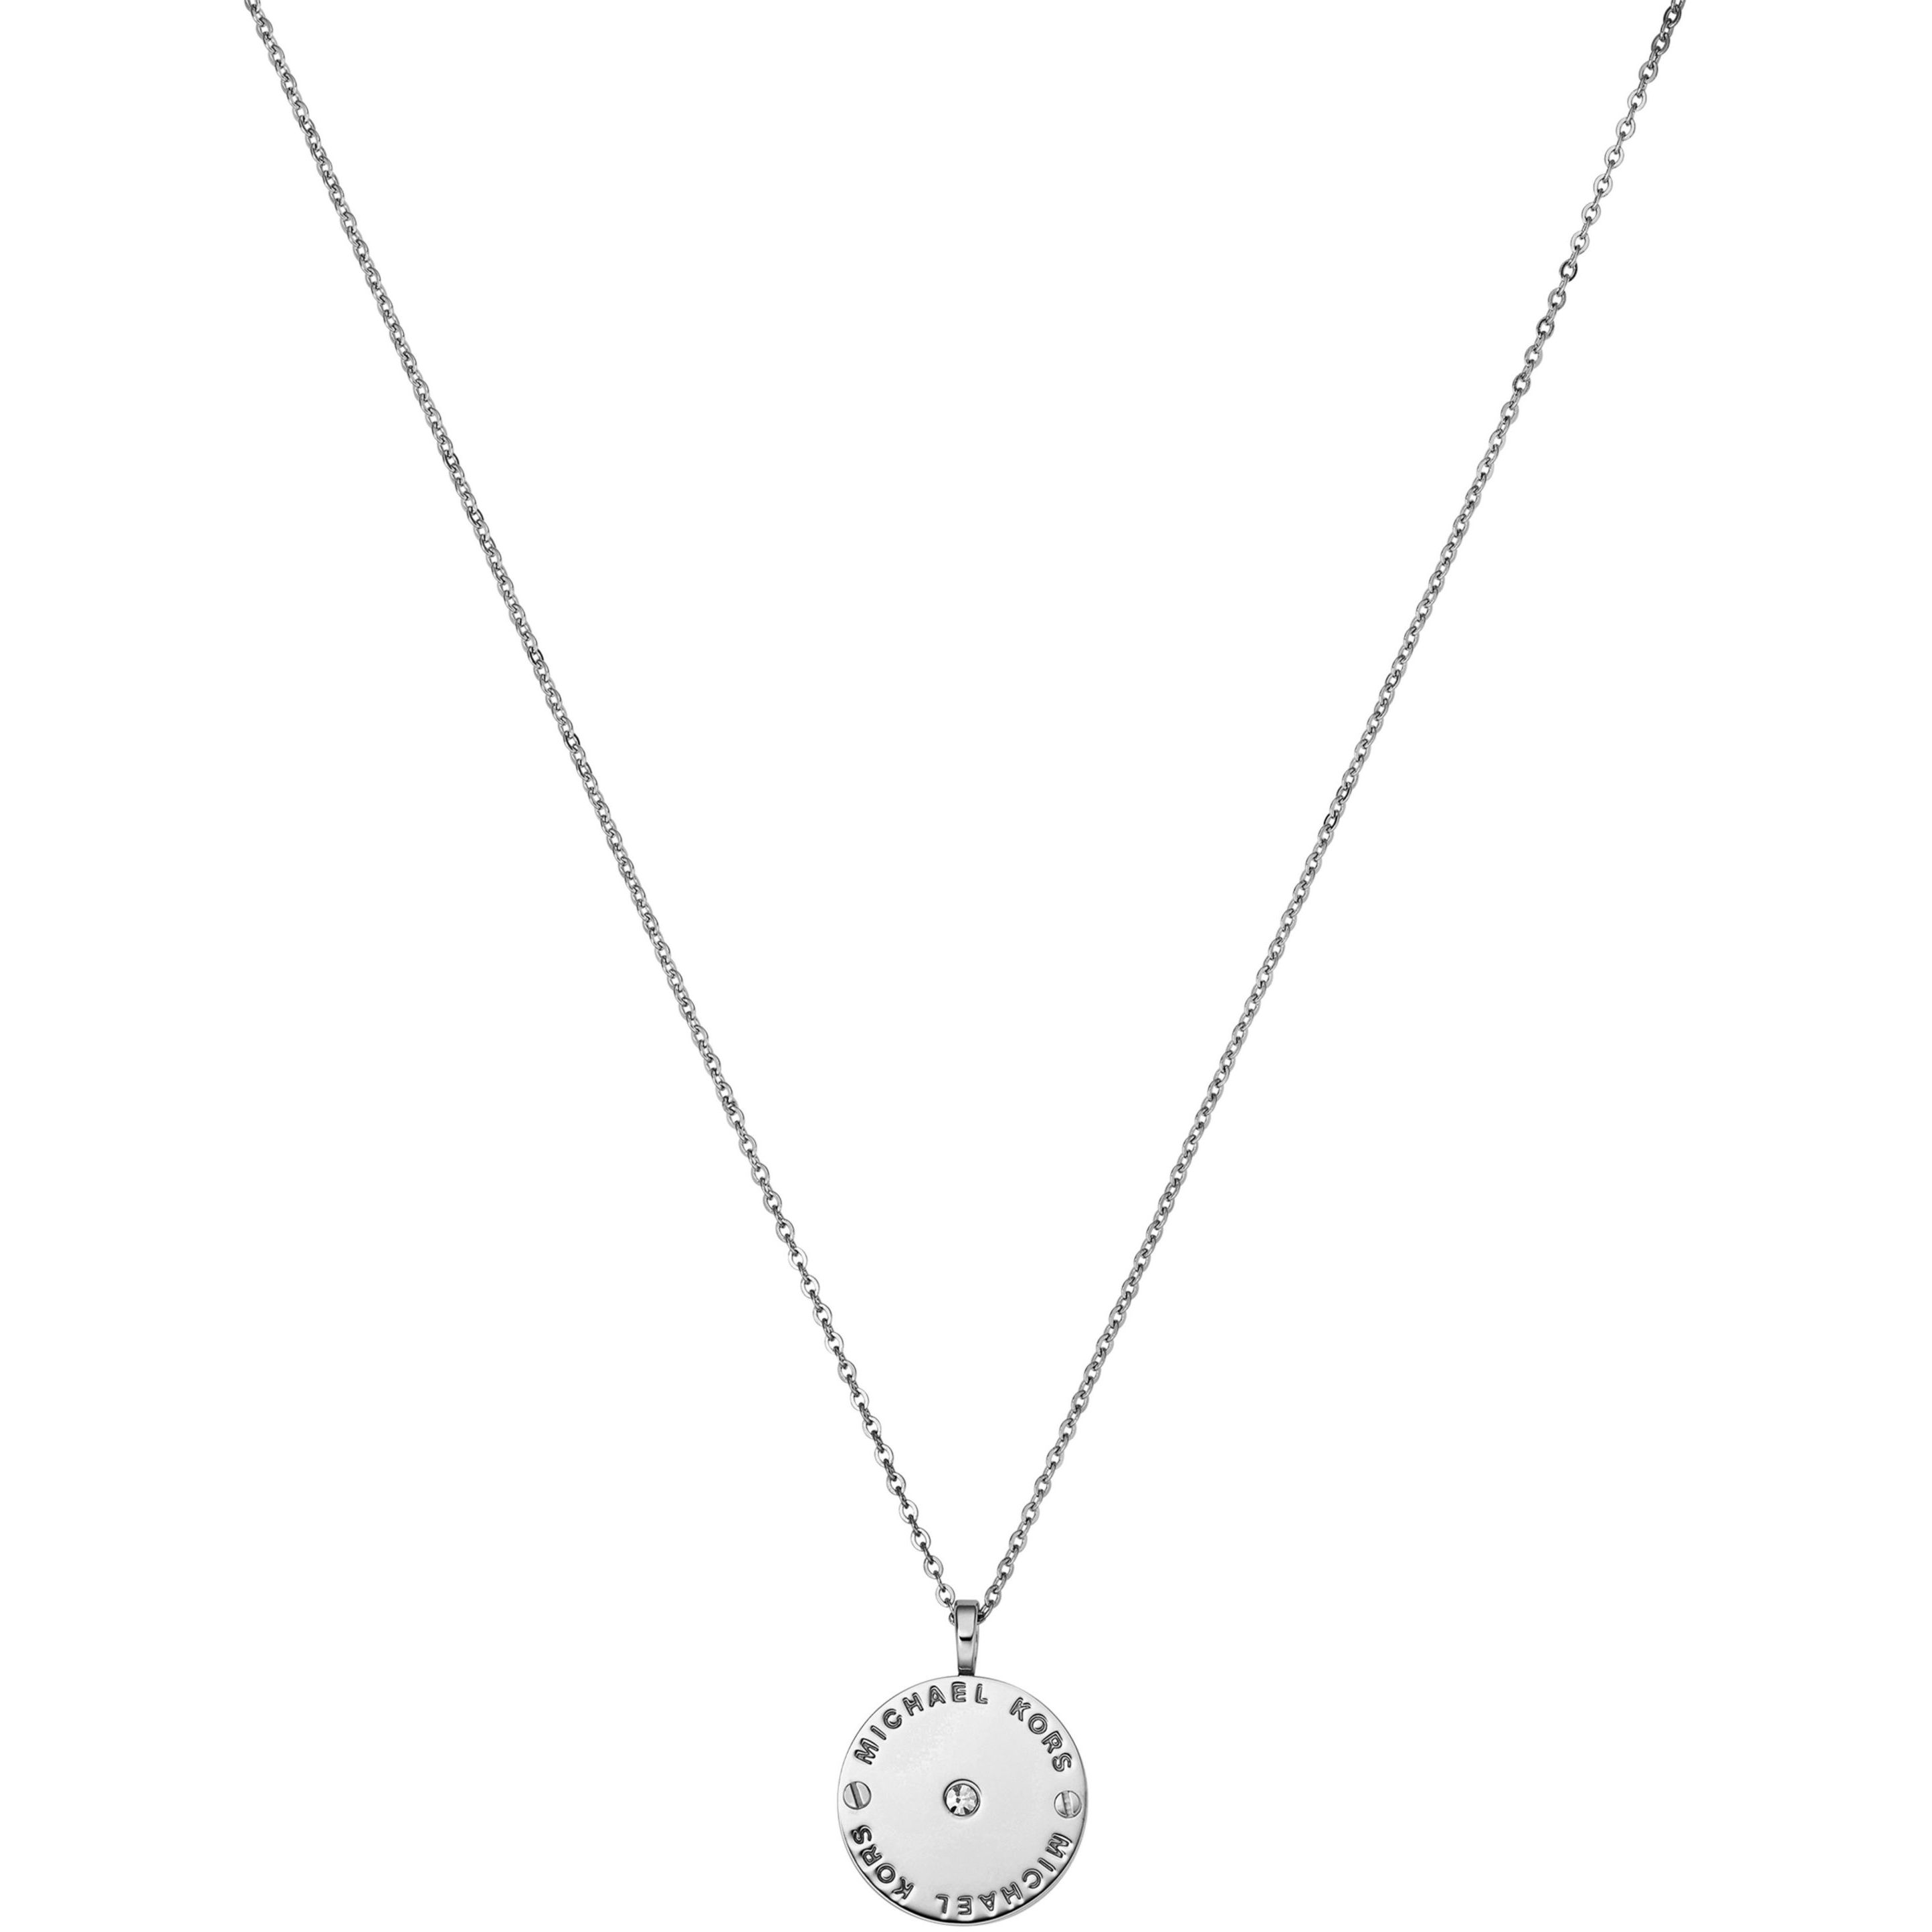 5ff577d54c1a Ladies Michael Kors Jewellery PVD Silver Plated Necklace (MKJ2655040) |  WatchShop.com™